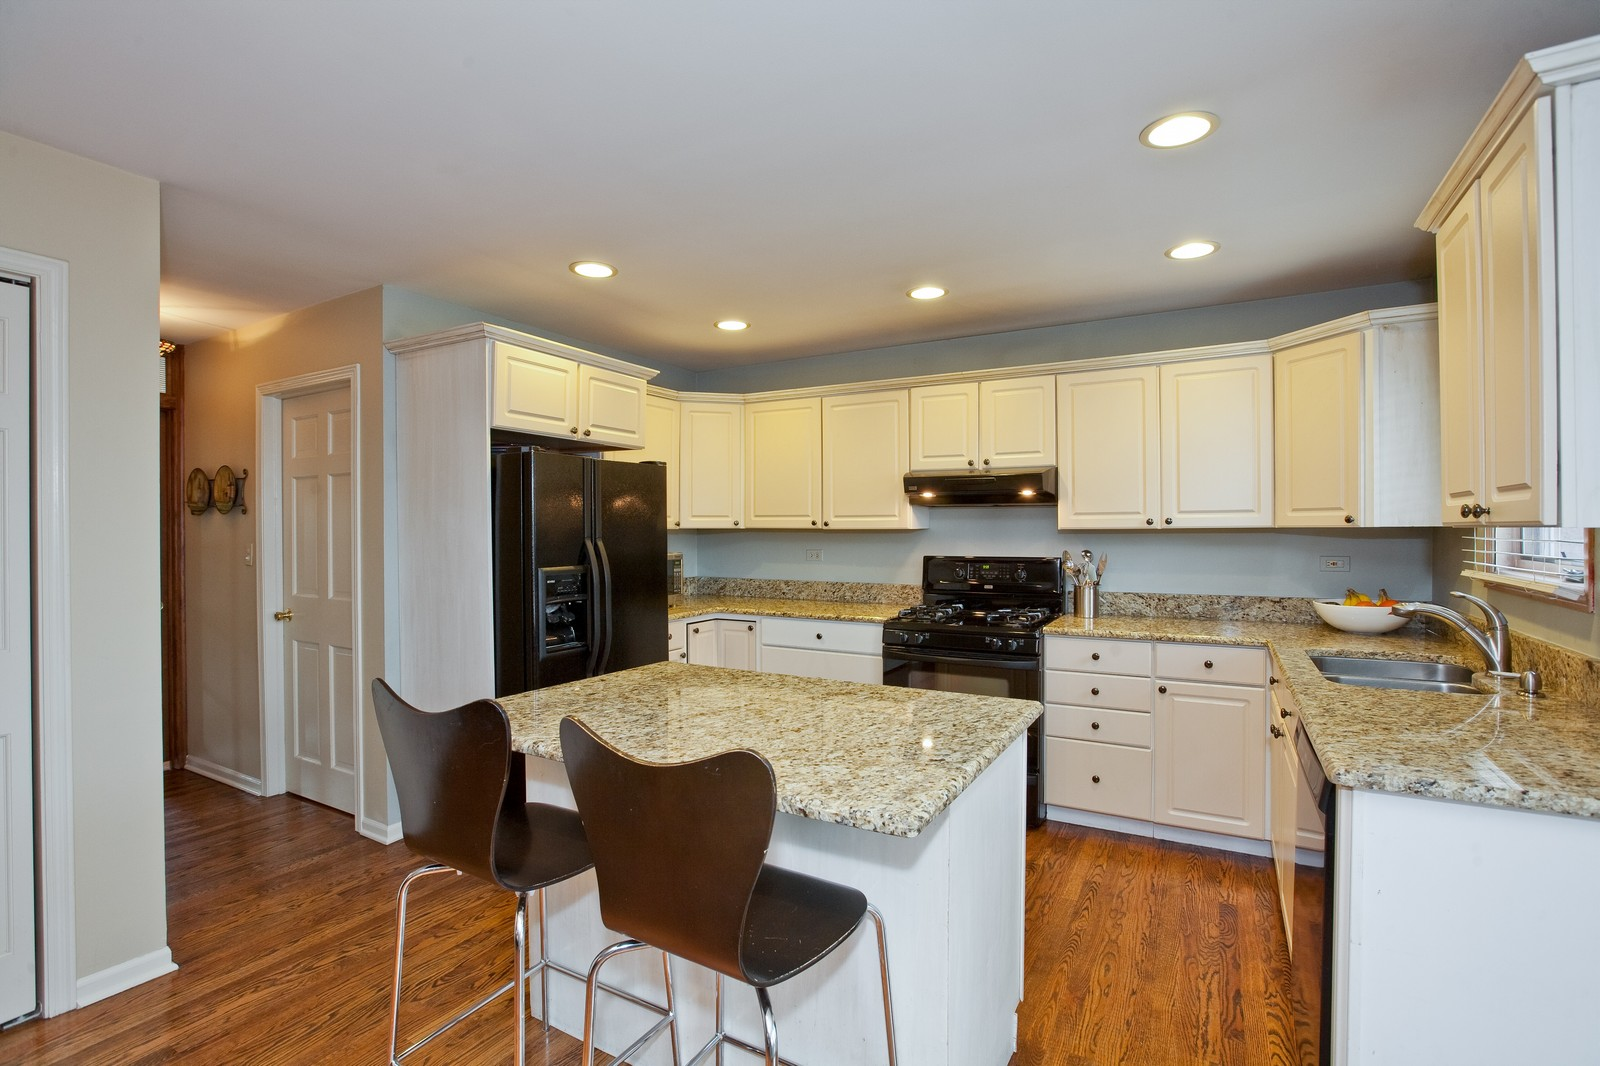 Real Estate Photography - 1031 W. 119th St, Lemont, IL, 60439 - Kitchen